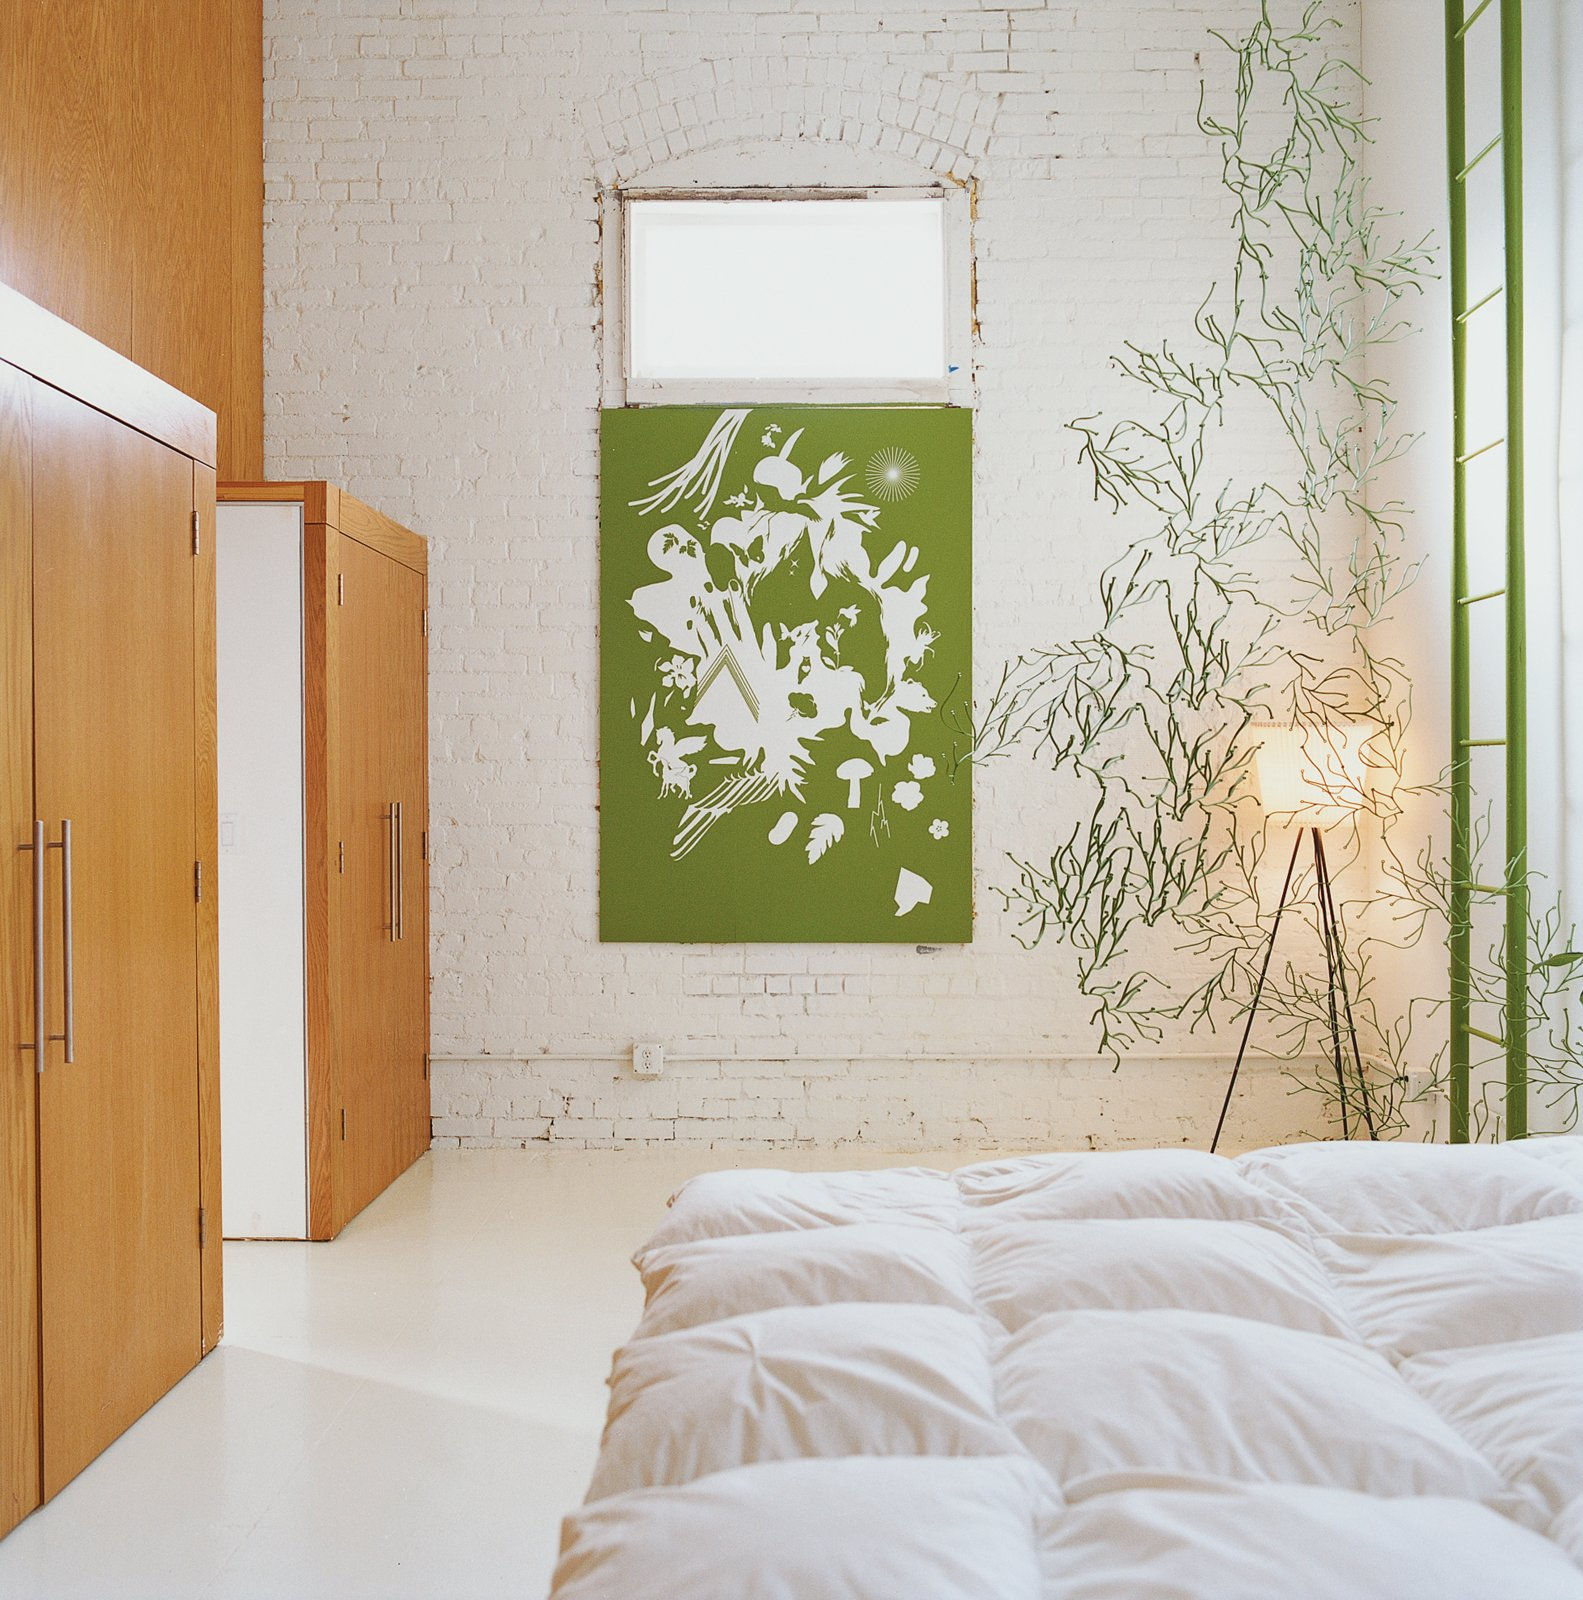 The bedroom is decorated minimally by another Vogt screenprint, and a strand of green Algue.  Modern Bedroom Ideas  by Matthew Keeshin from A Minneapolis Building That Has Lived Multiple Lives Is Revitalized by a Coffeehouse Owner